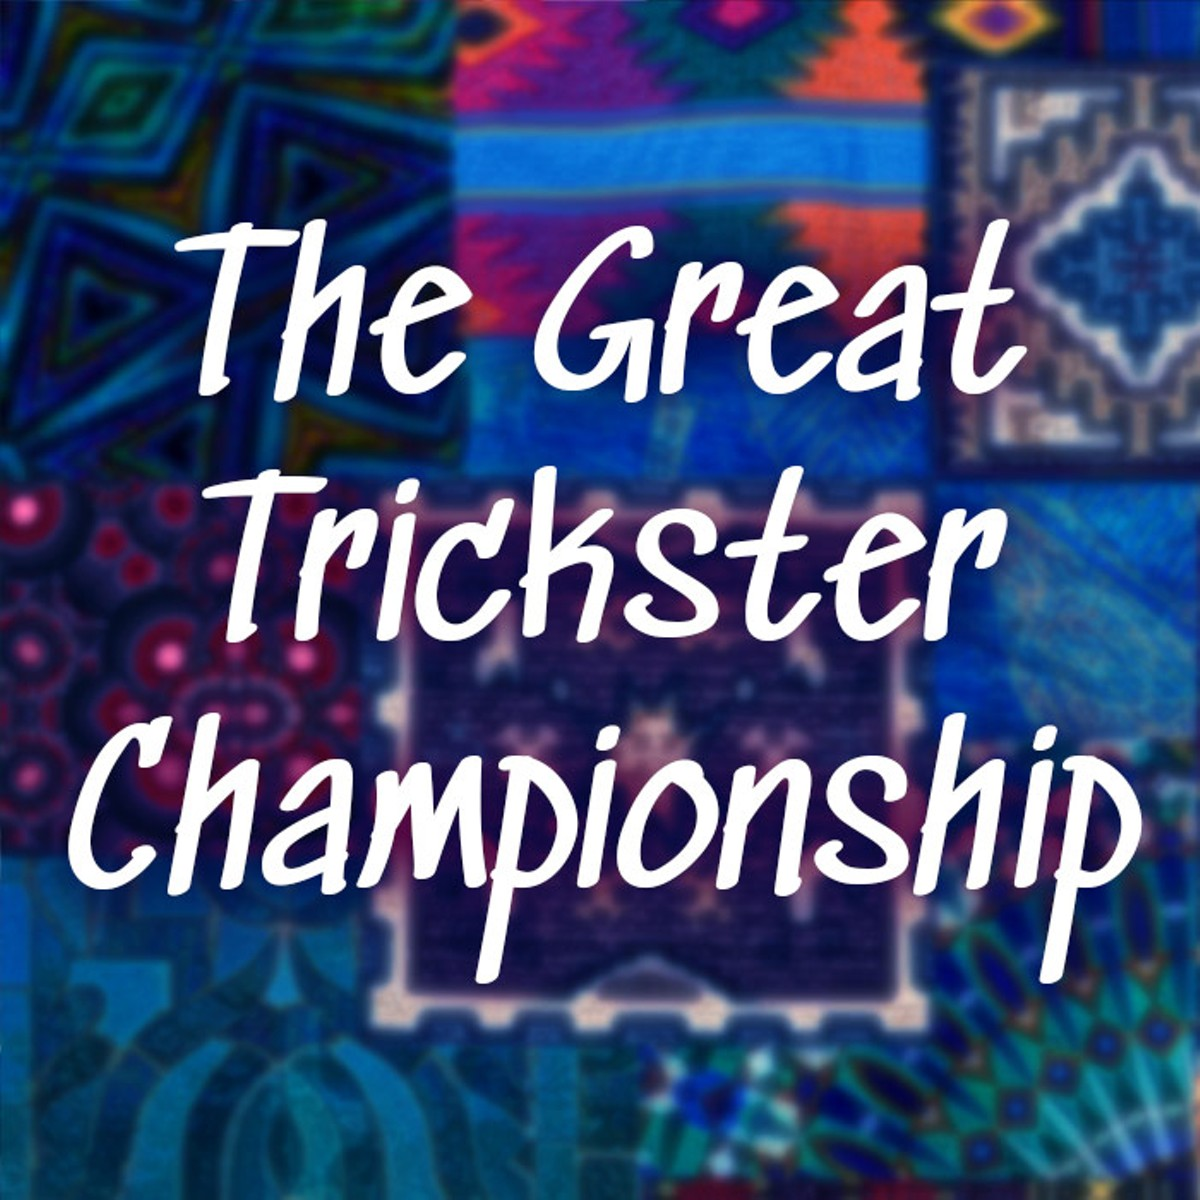 The Great Trickster Championship